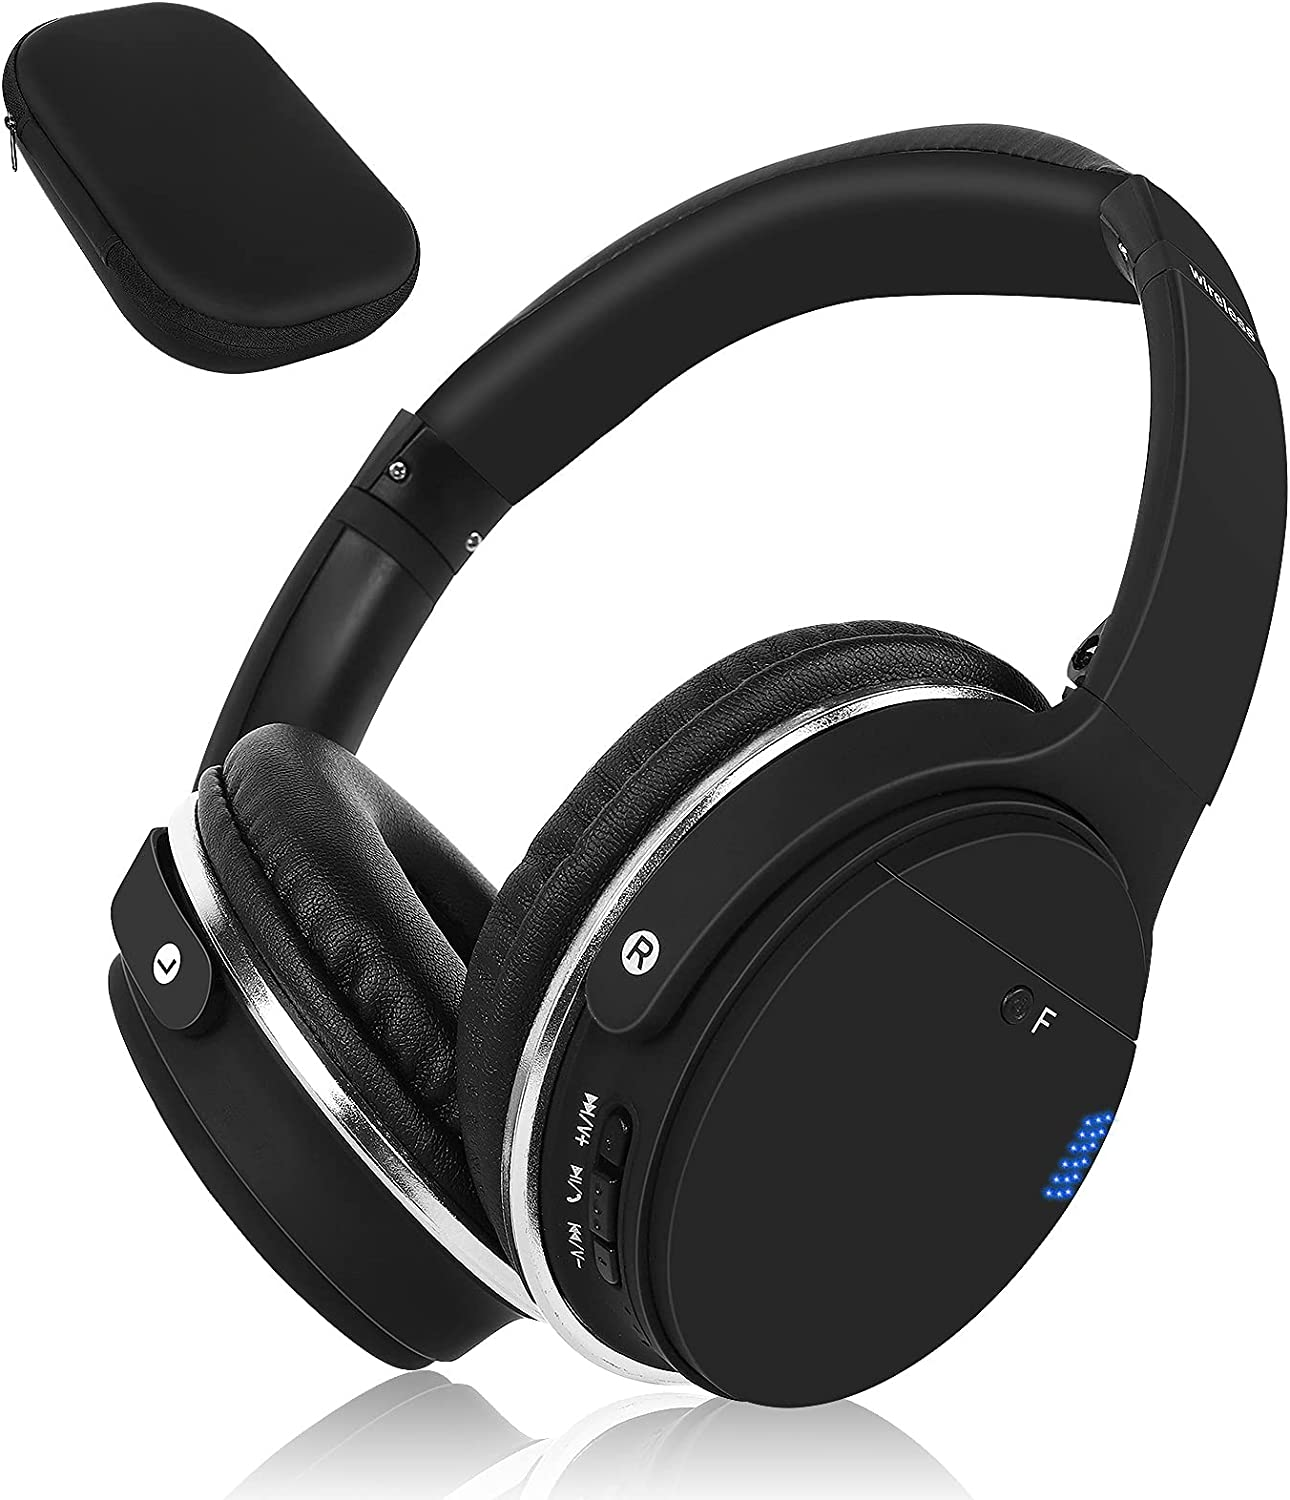 UrbanX UX35 Wireless Industry Leading Overhead M Price Store reduction with Headphones